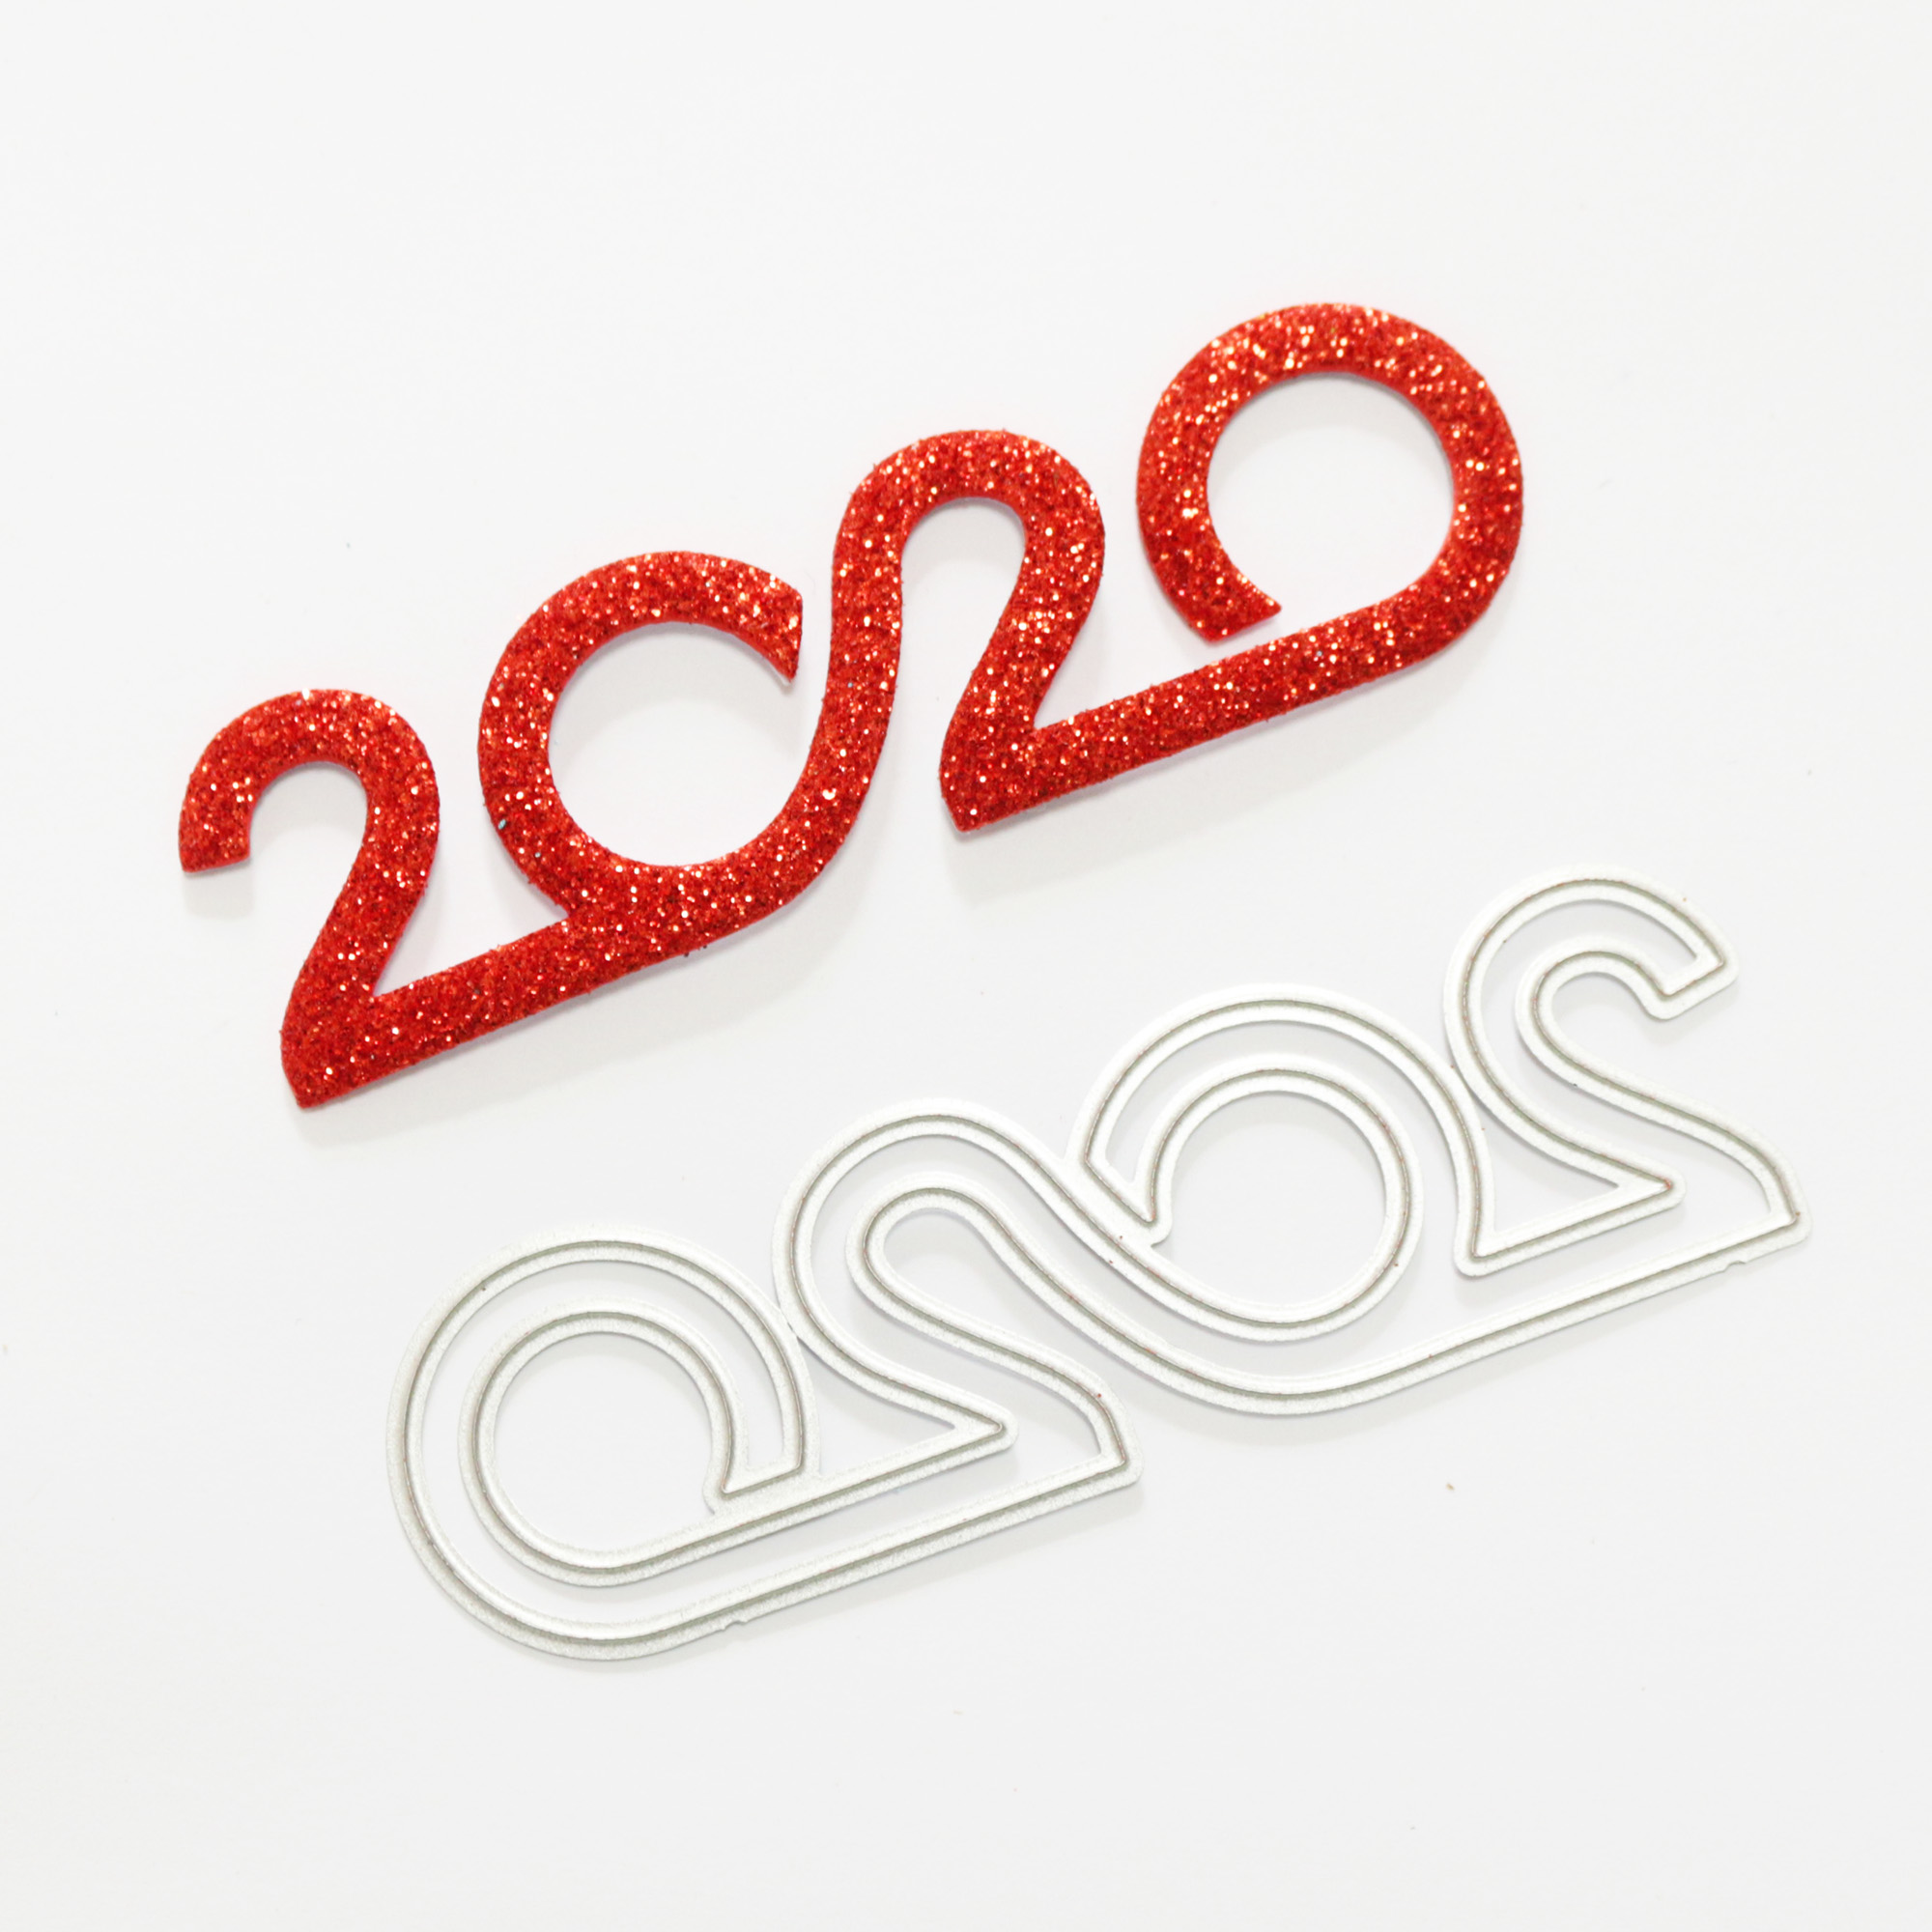 <font><b>2020</b></font> Number Text Metal Cutting Dies <font><b>2020</b></font> Words <font><b>Happy</b></font> <font><b>New</b></font> <font><b>Year</b></font> Stencil for DIY Scrapbooking <font><b>Cards</b></font> Decorative Embossing Dies image